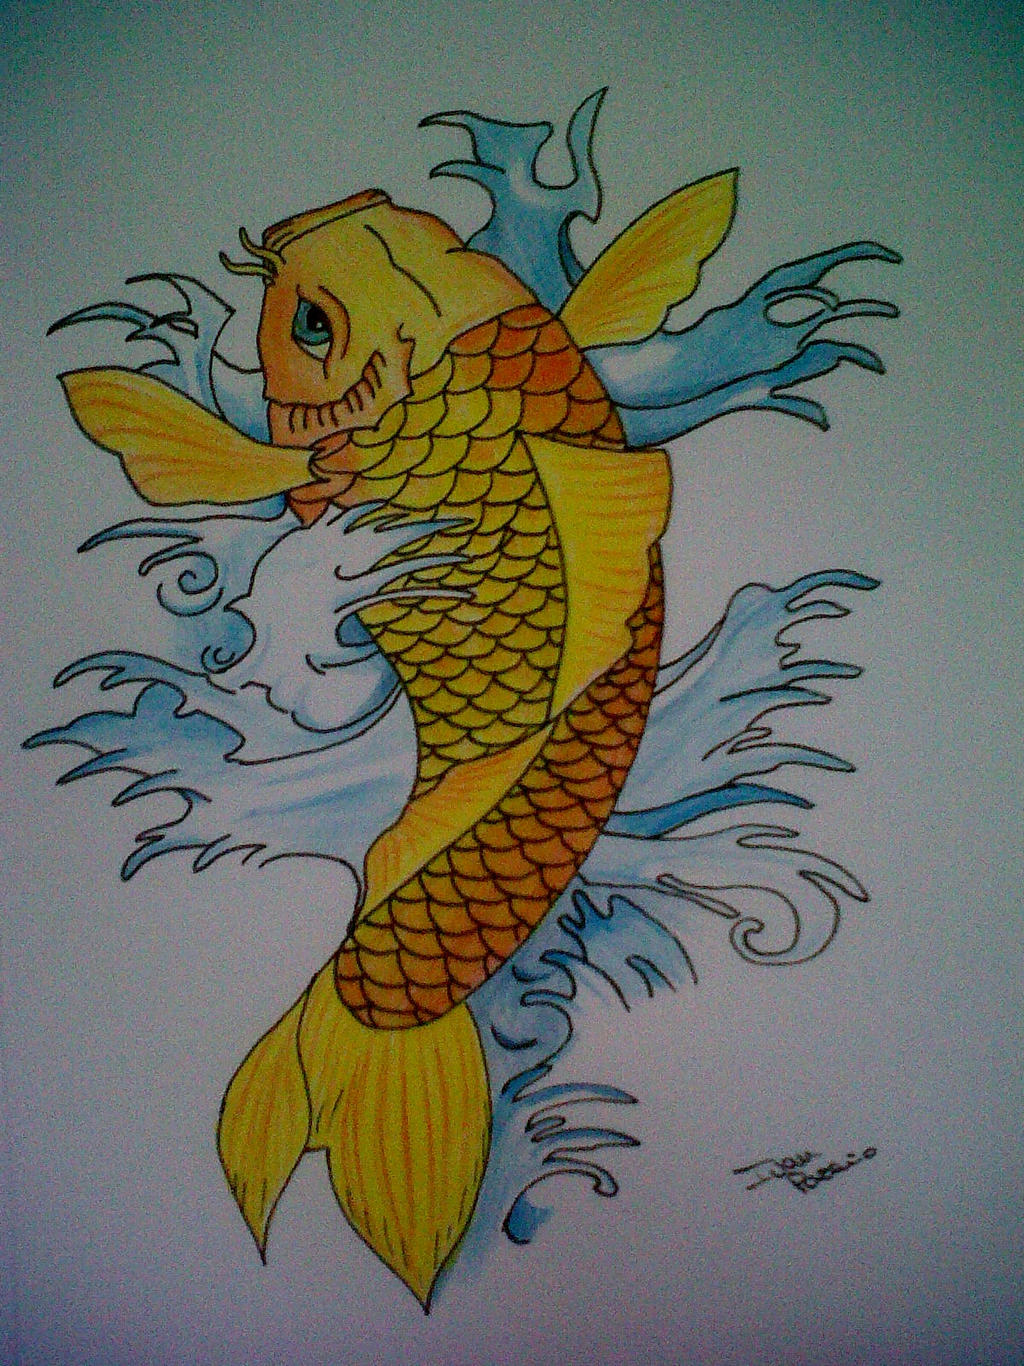 Carpa koi by camaia69 on deviantart for Carpa koi costo